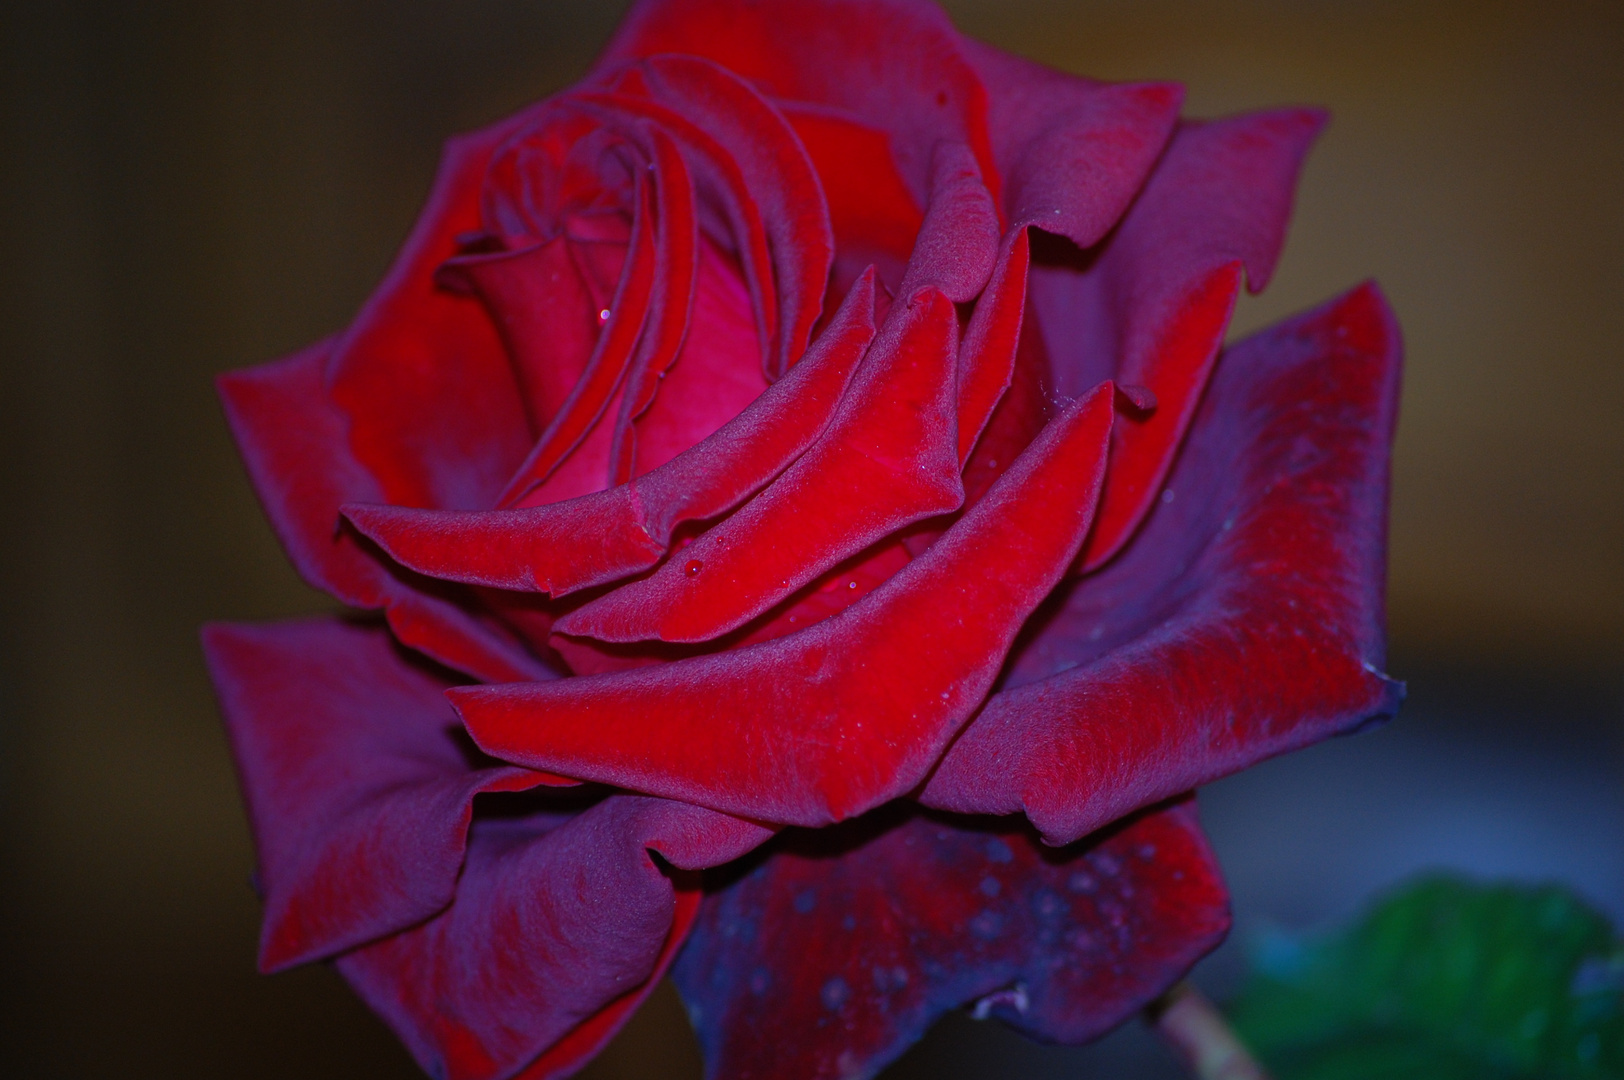 rouge pourpre